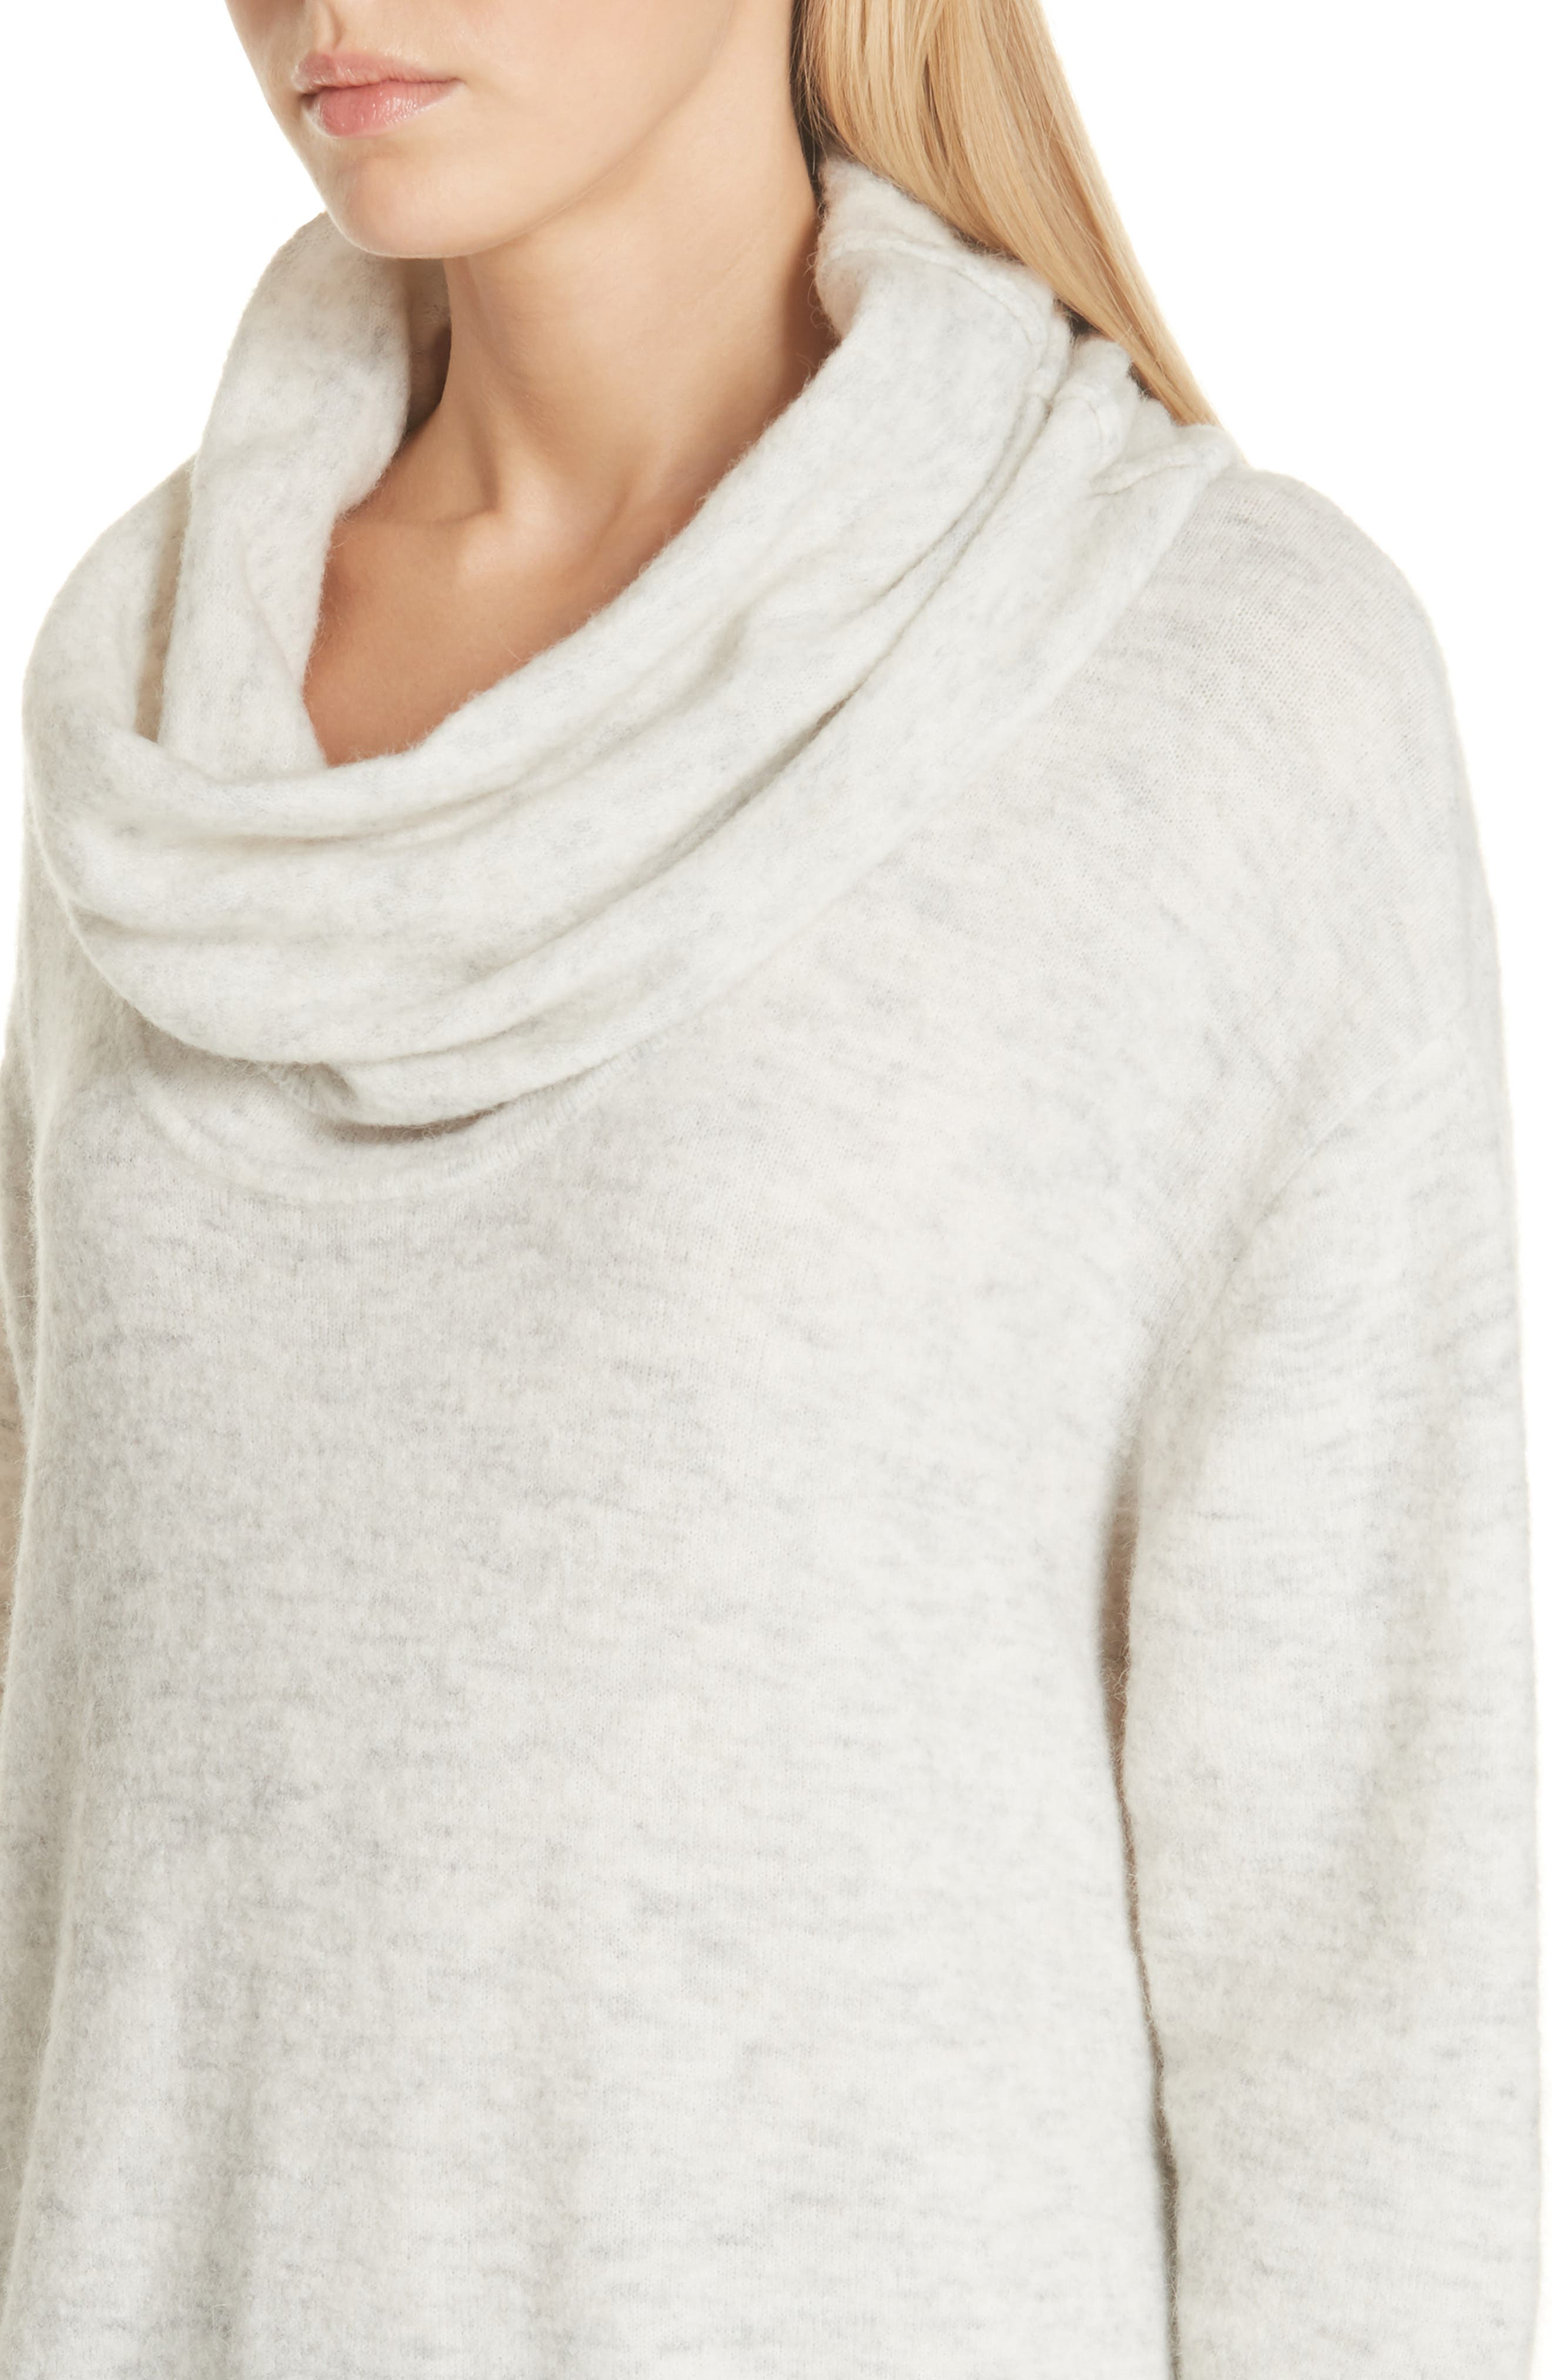 Mineral Cowl Neck Sweater,                             Alternate thumbnail 4, color,                             GREY